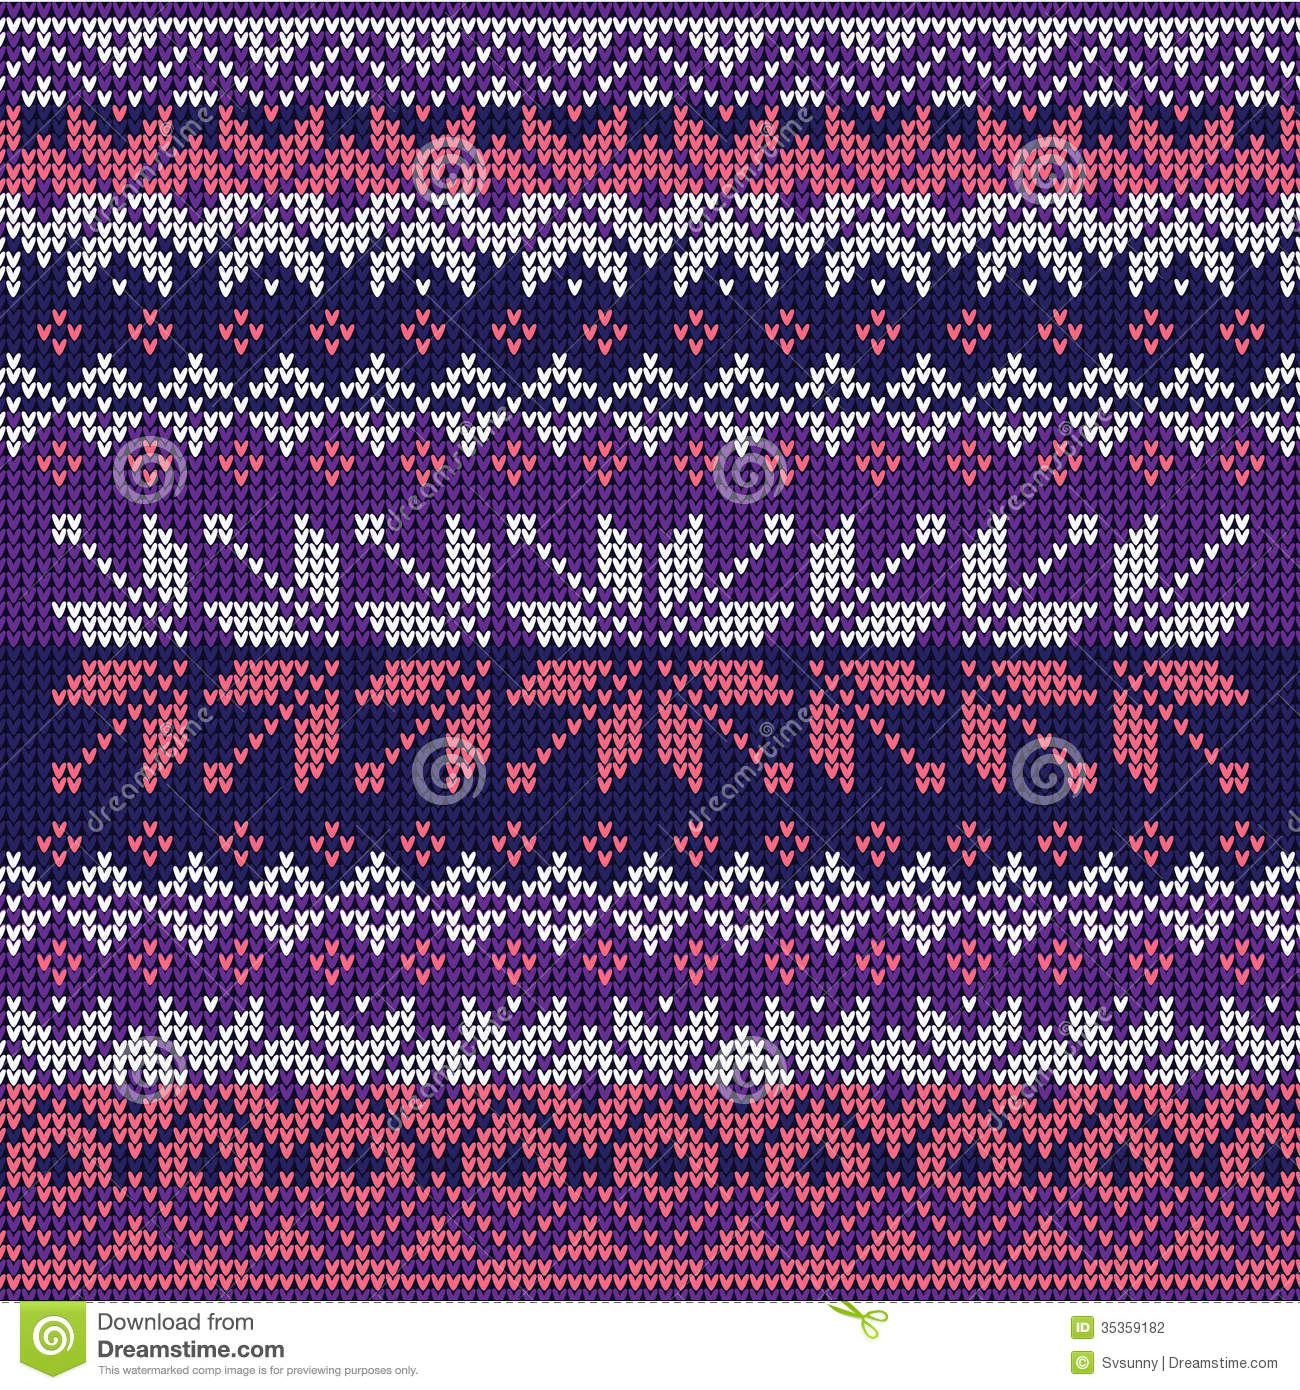 Nordic Knitting Pattern : Scandinavian Style Seamless Knitted Pattern. Colors: Blue, White Stock Photog...